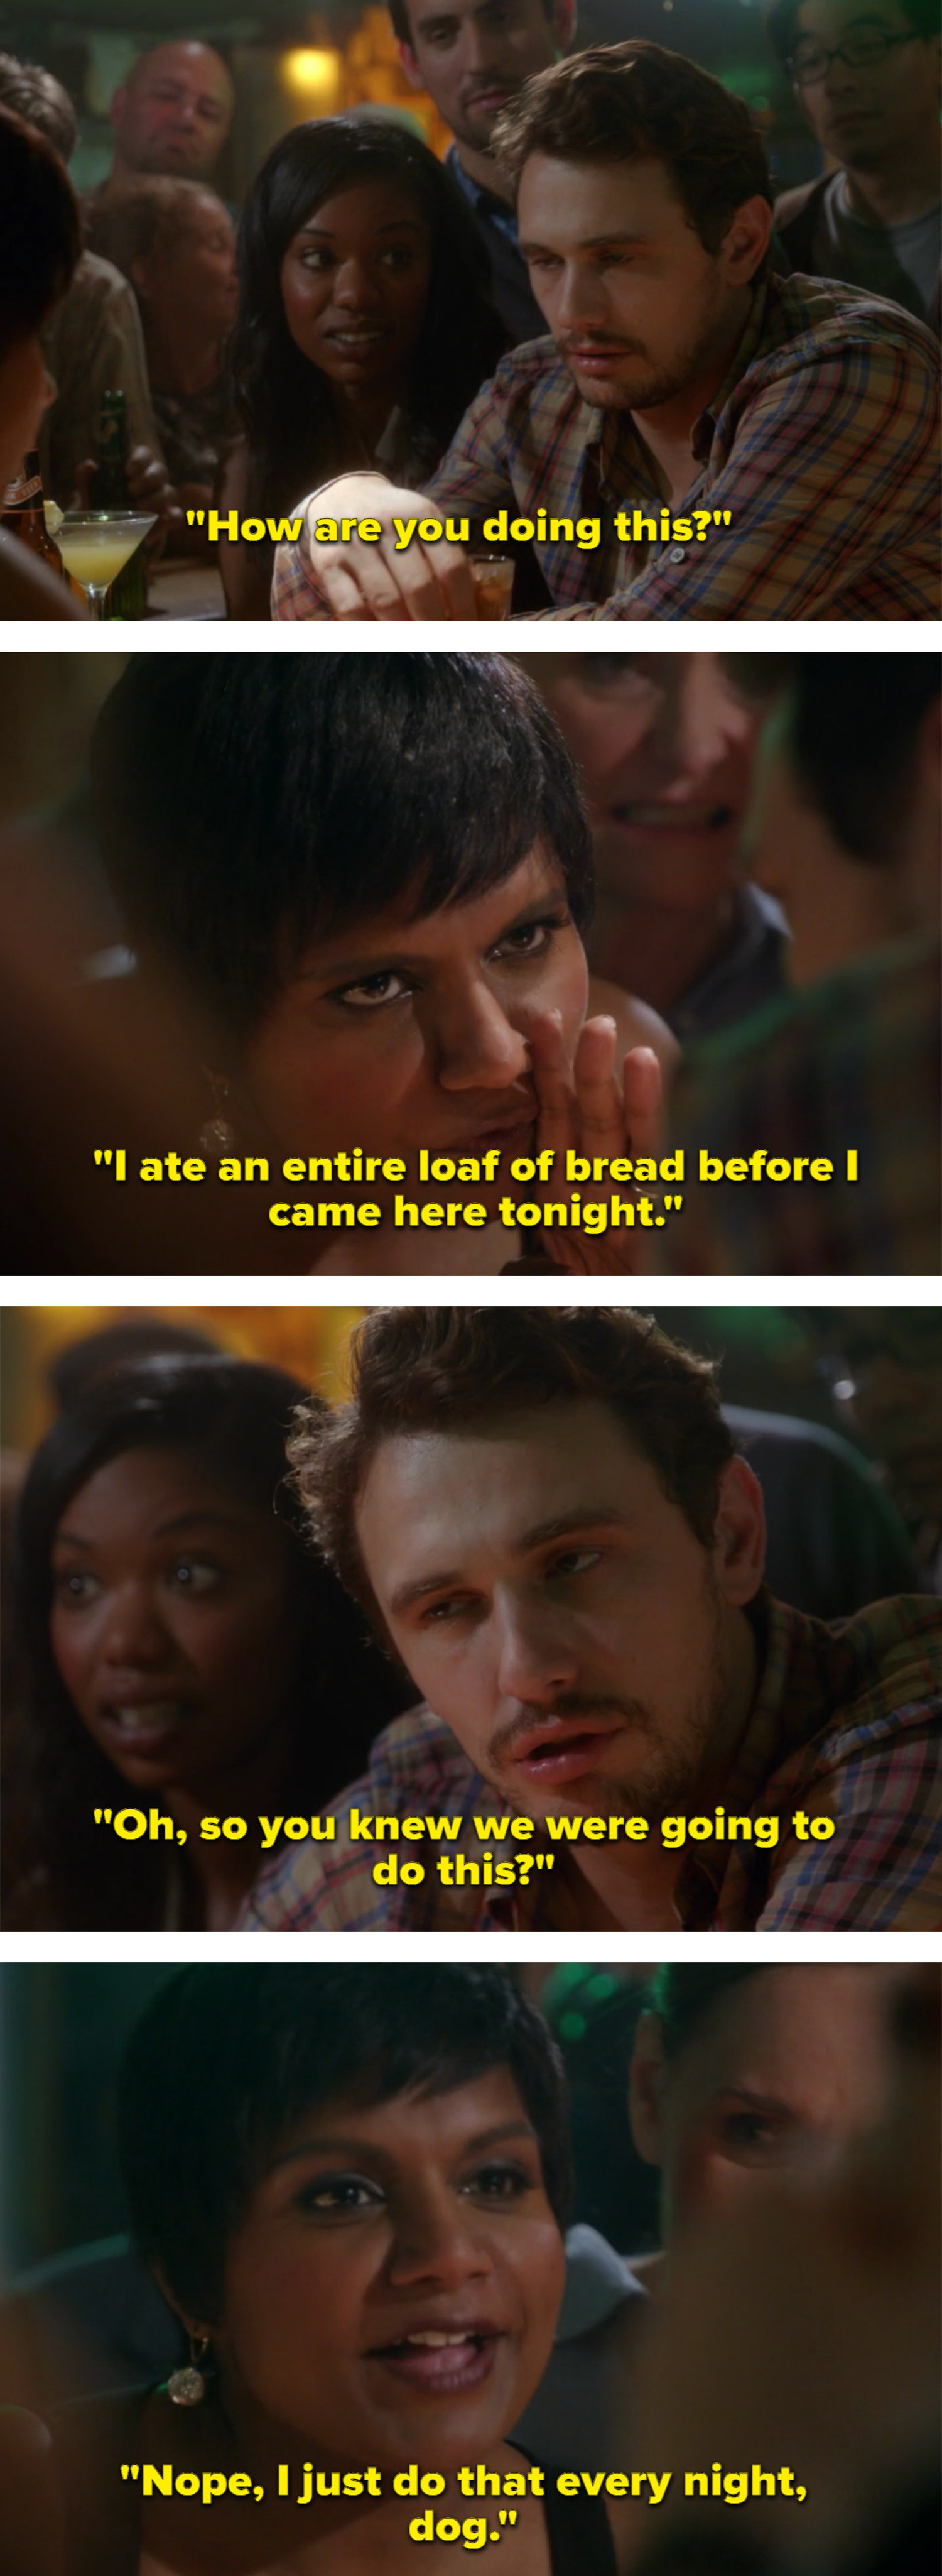 Mindy beats another doctor at a shots-off because she eats a loaf of bread every night